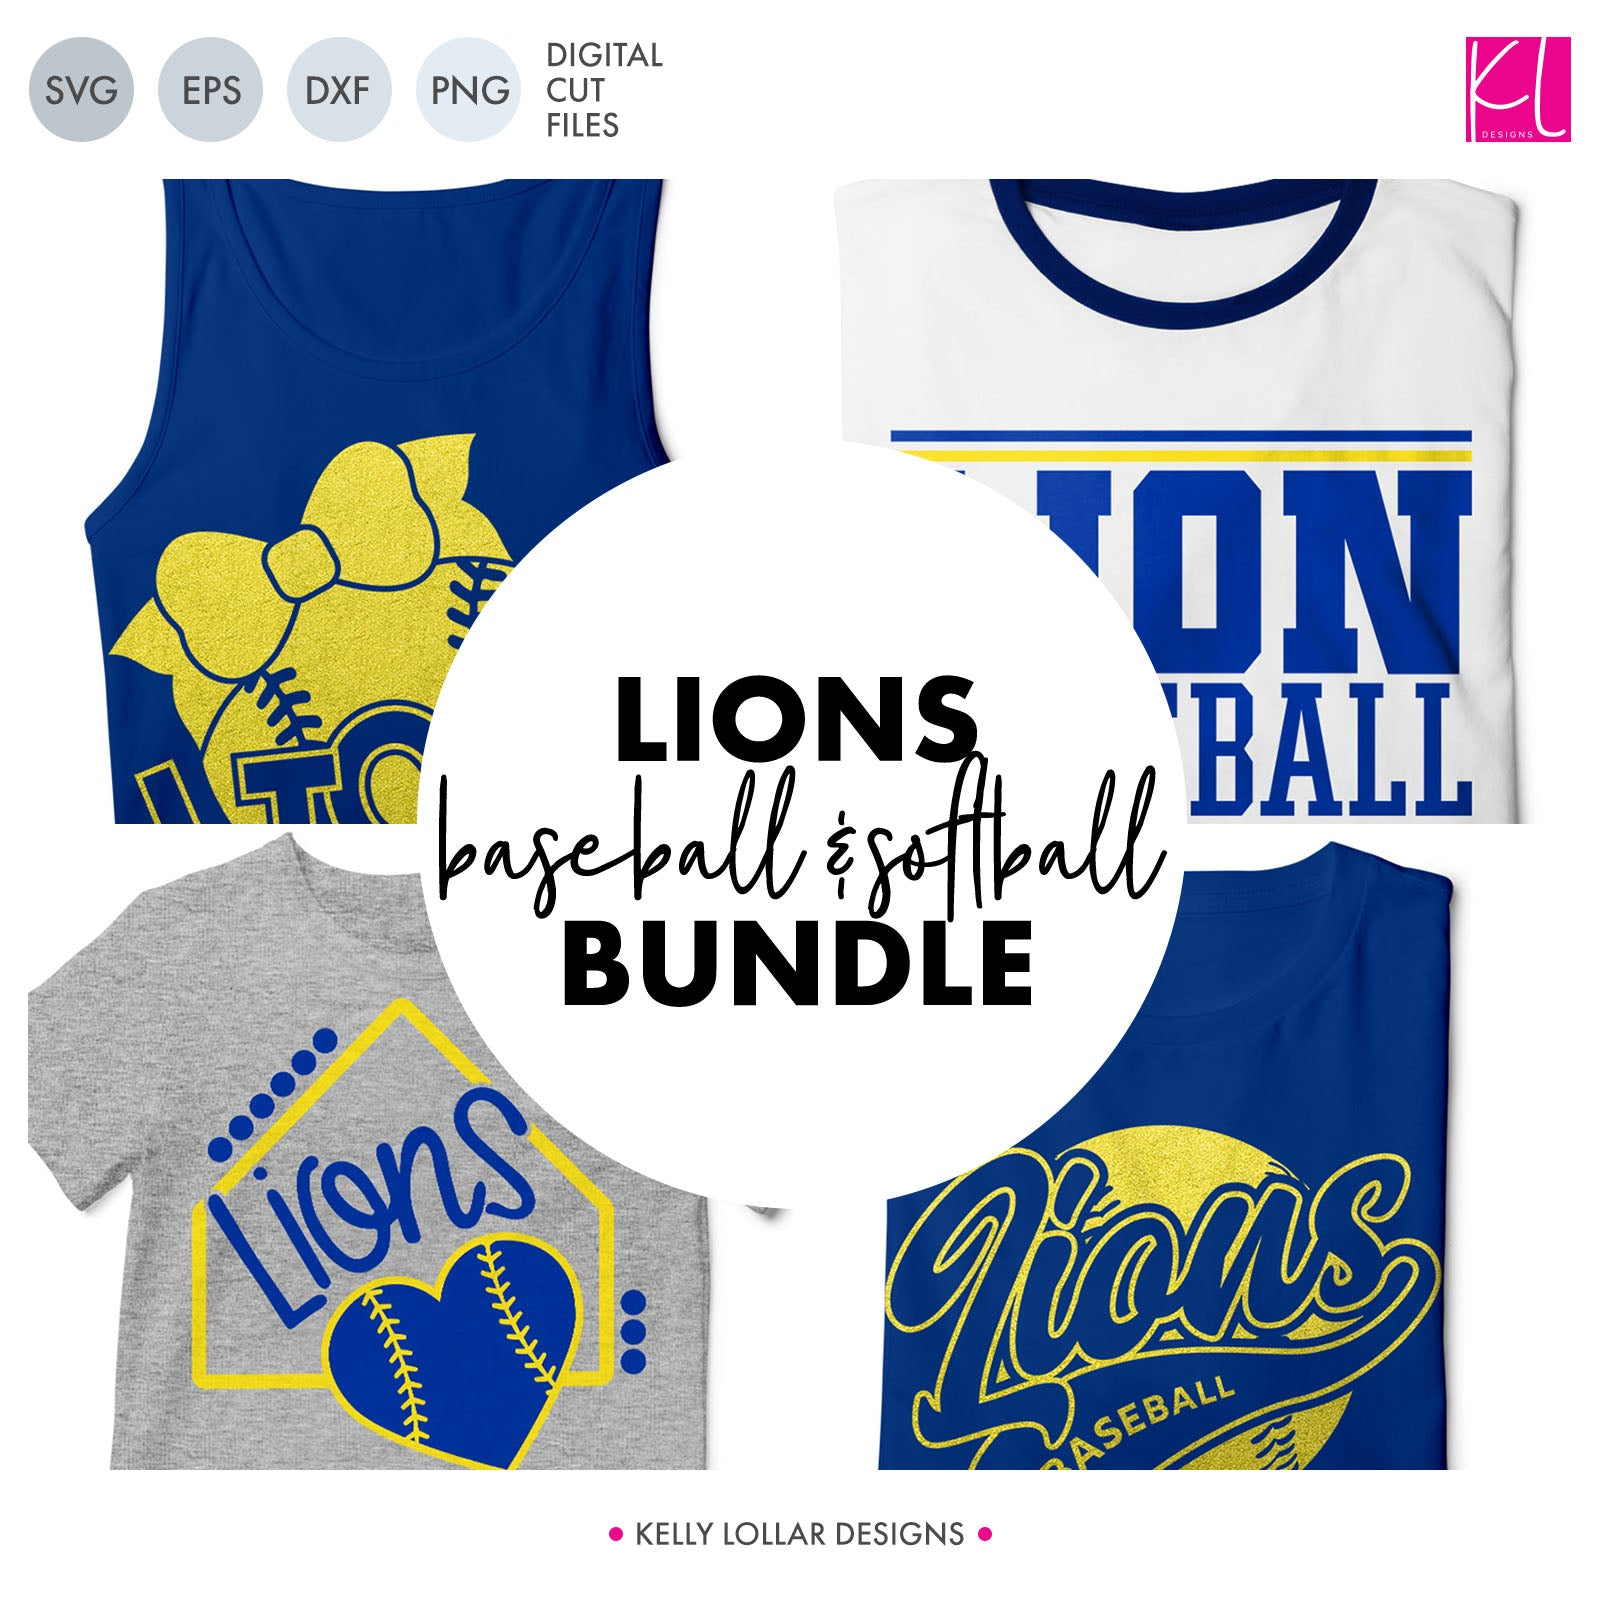 Lions Baseball & Softball Bundle | SVG DXF EPS PNG Cut Files It's baseball and softball season, so Lion crafter know what that means ... new spirit shirts! This fifteen-piece bundle includes a little something for everyone - from girly and cute